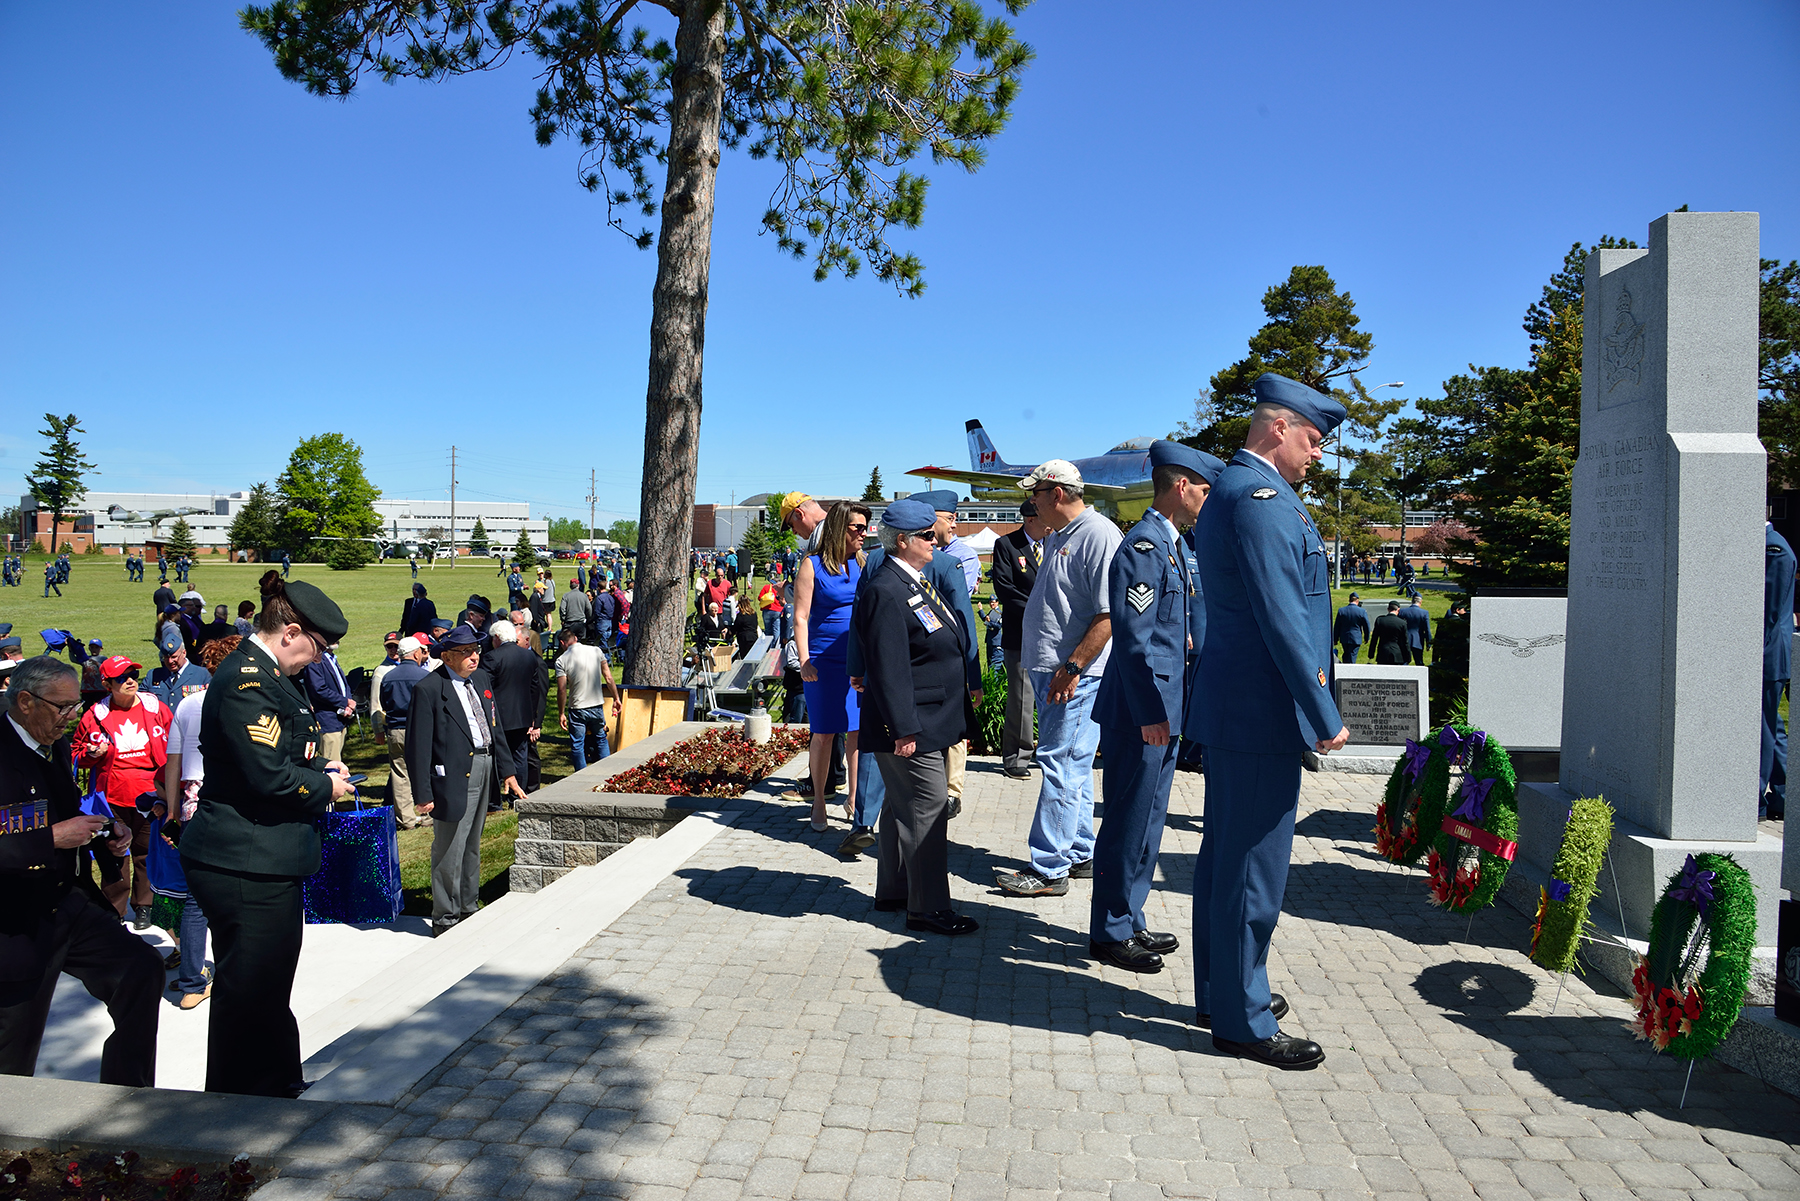 Military personnel, family members, and guests gather to get a closer view of the newly rebuilt Royal Canadian Air Force Memorial after the unveiling parade on June 3, 2017, at 16 Wing/Canadian Forces Base Borden, Ontario. PHOTO: Sergeant Christopher Bentley, BM01-2017-0174-171